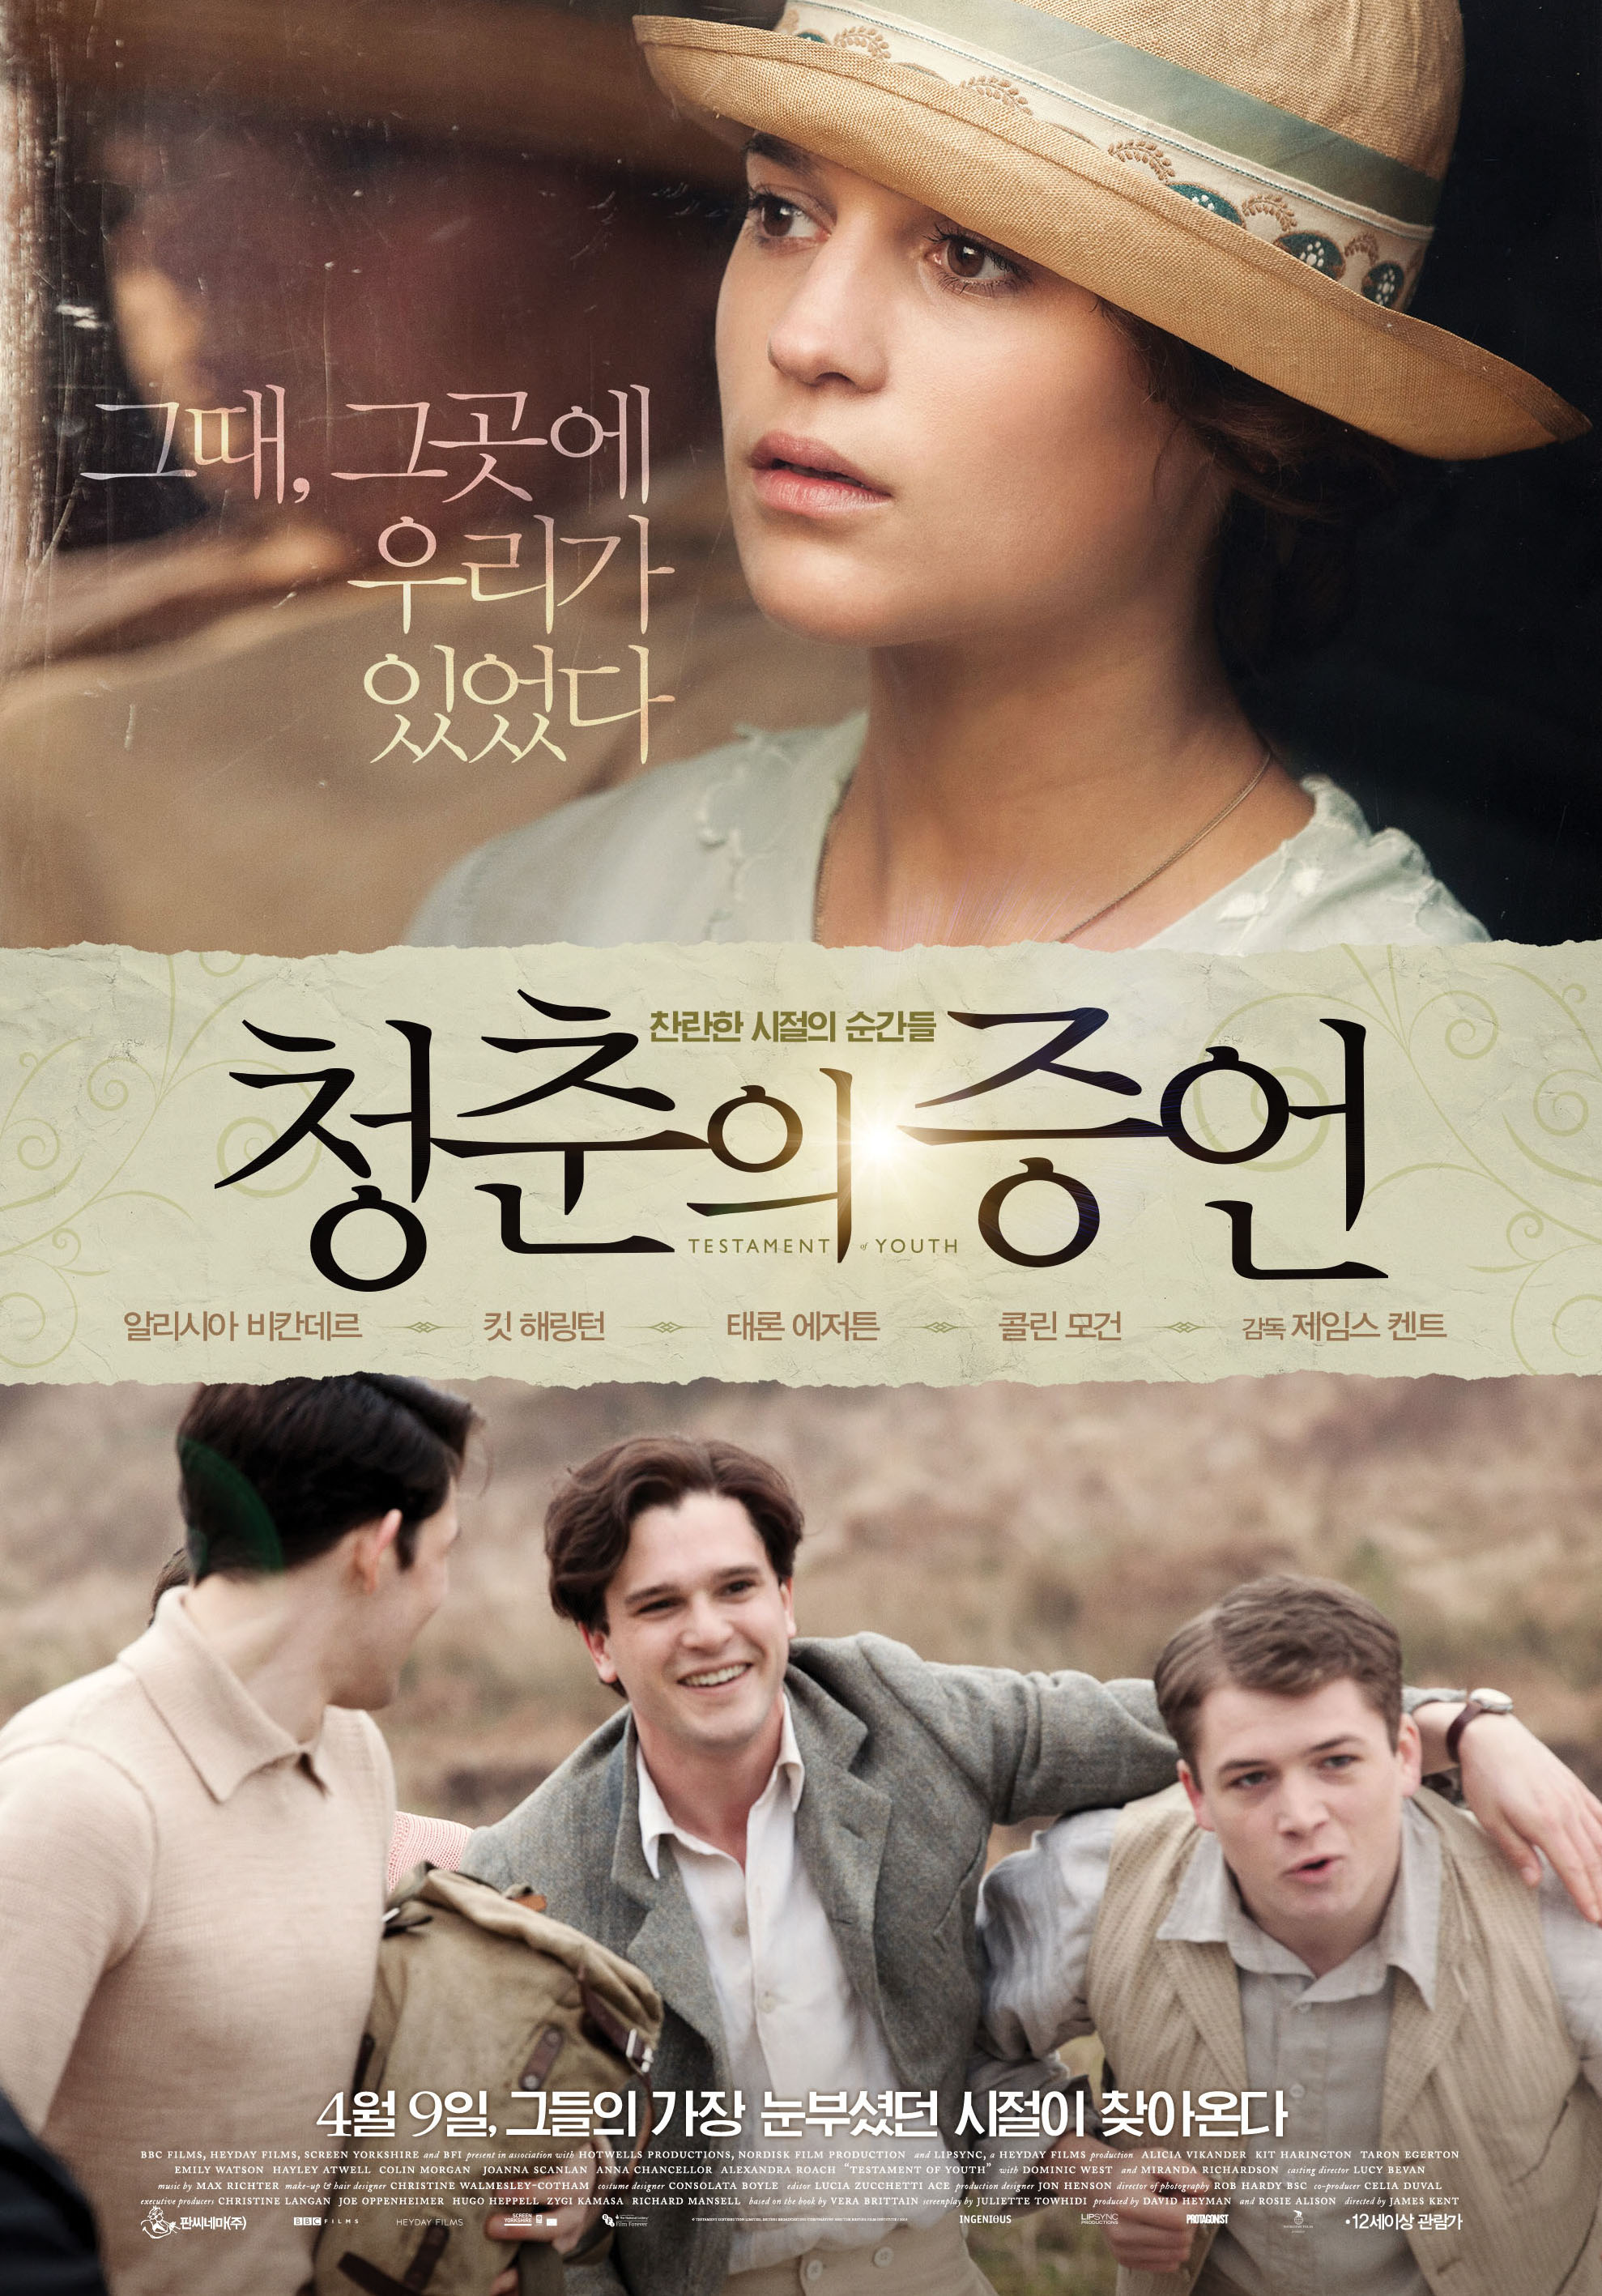 청춘의 증언 (Testament of Youth, 2015)